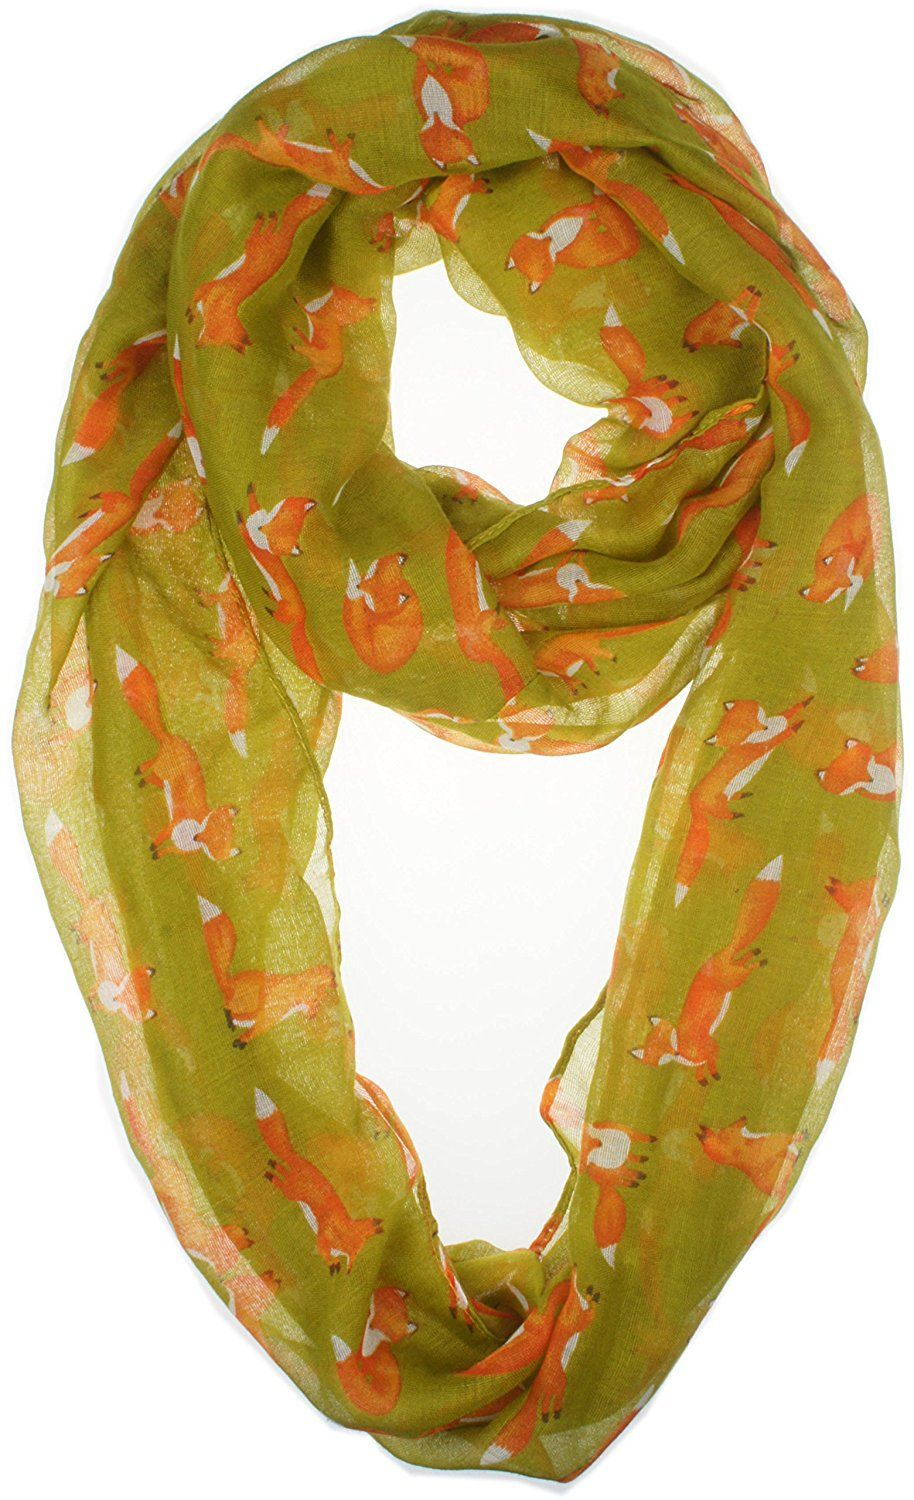 Vivian & Vincent Soft Light Cartoon Fox Sheer Infinity Scarf Olive: Amazon.ca: Luggage & Bags